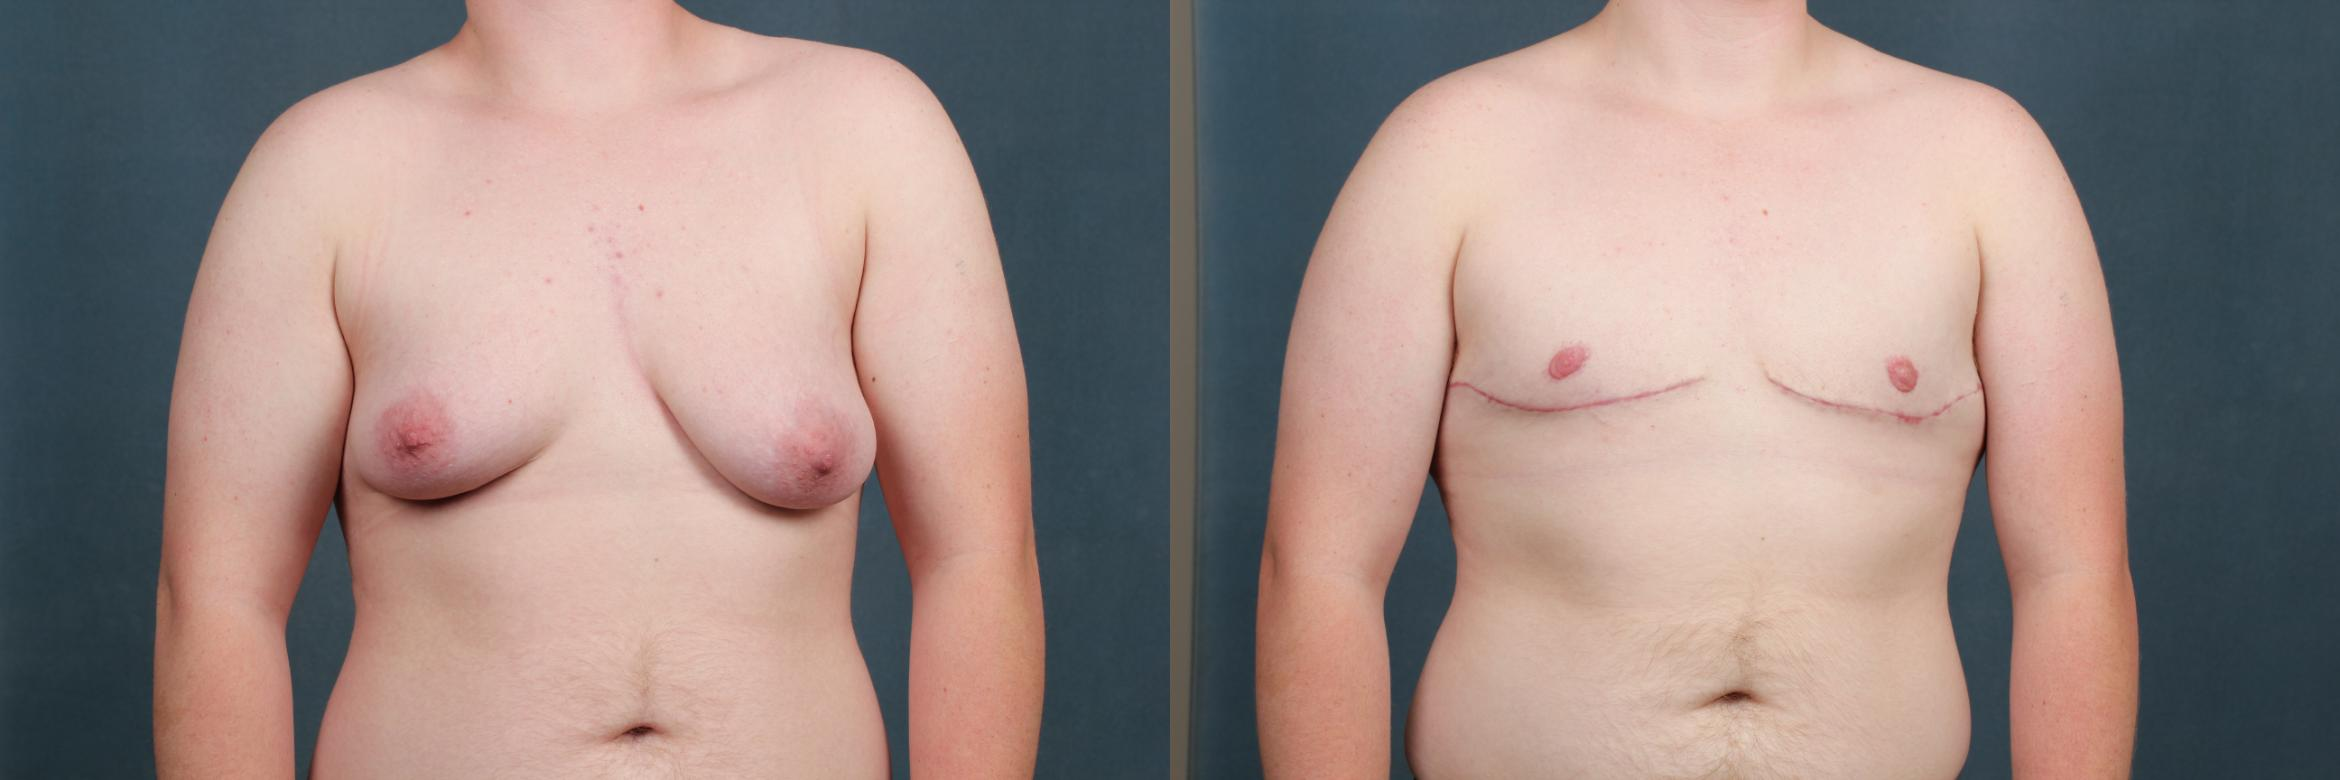 Top Surgery Case 733 Before & After Front | Louisville, KY | CaloAesthetics® Plastic Surgery Center